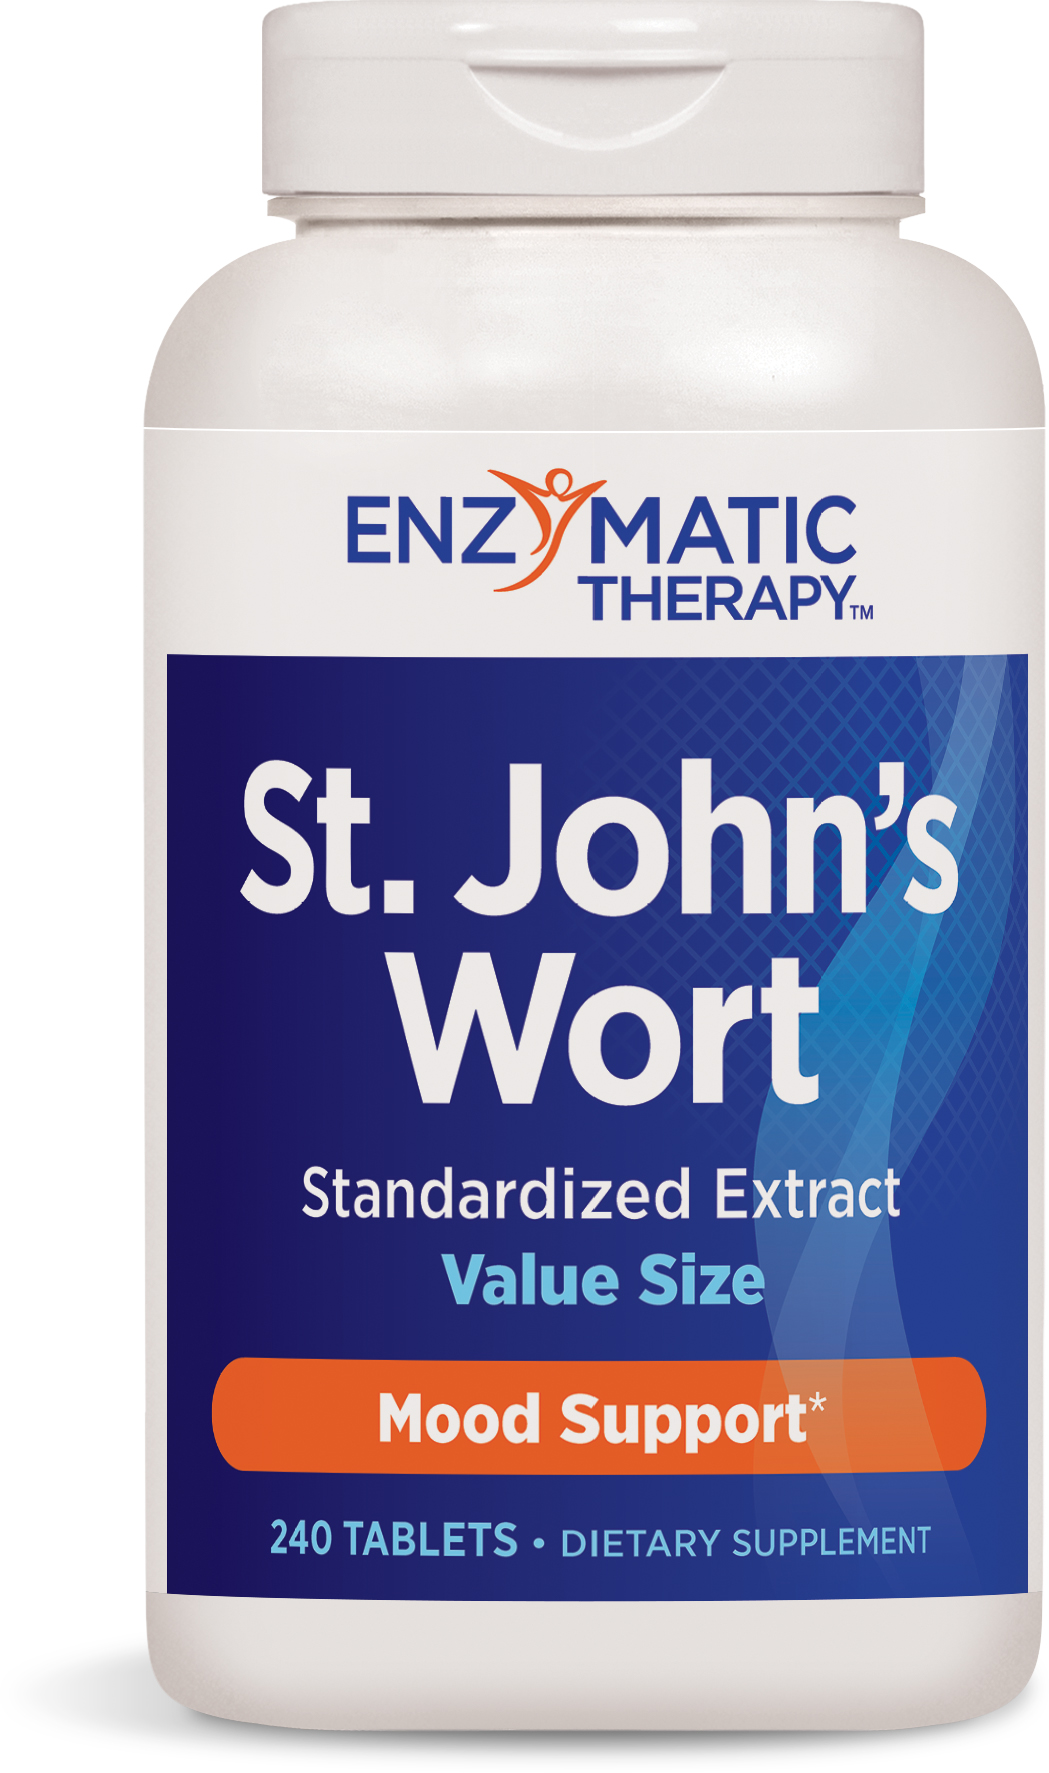 St. John's Wort Extract Extra Strength 240 tabs by Enzymatic Therapy